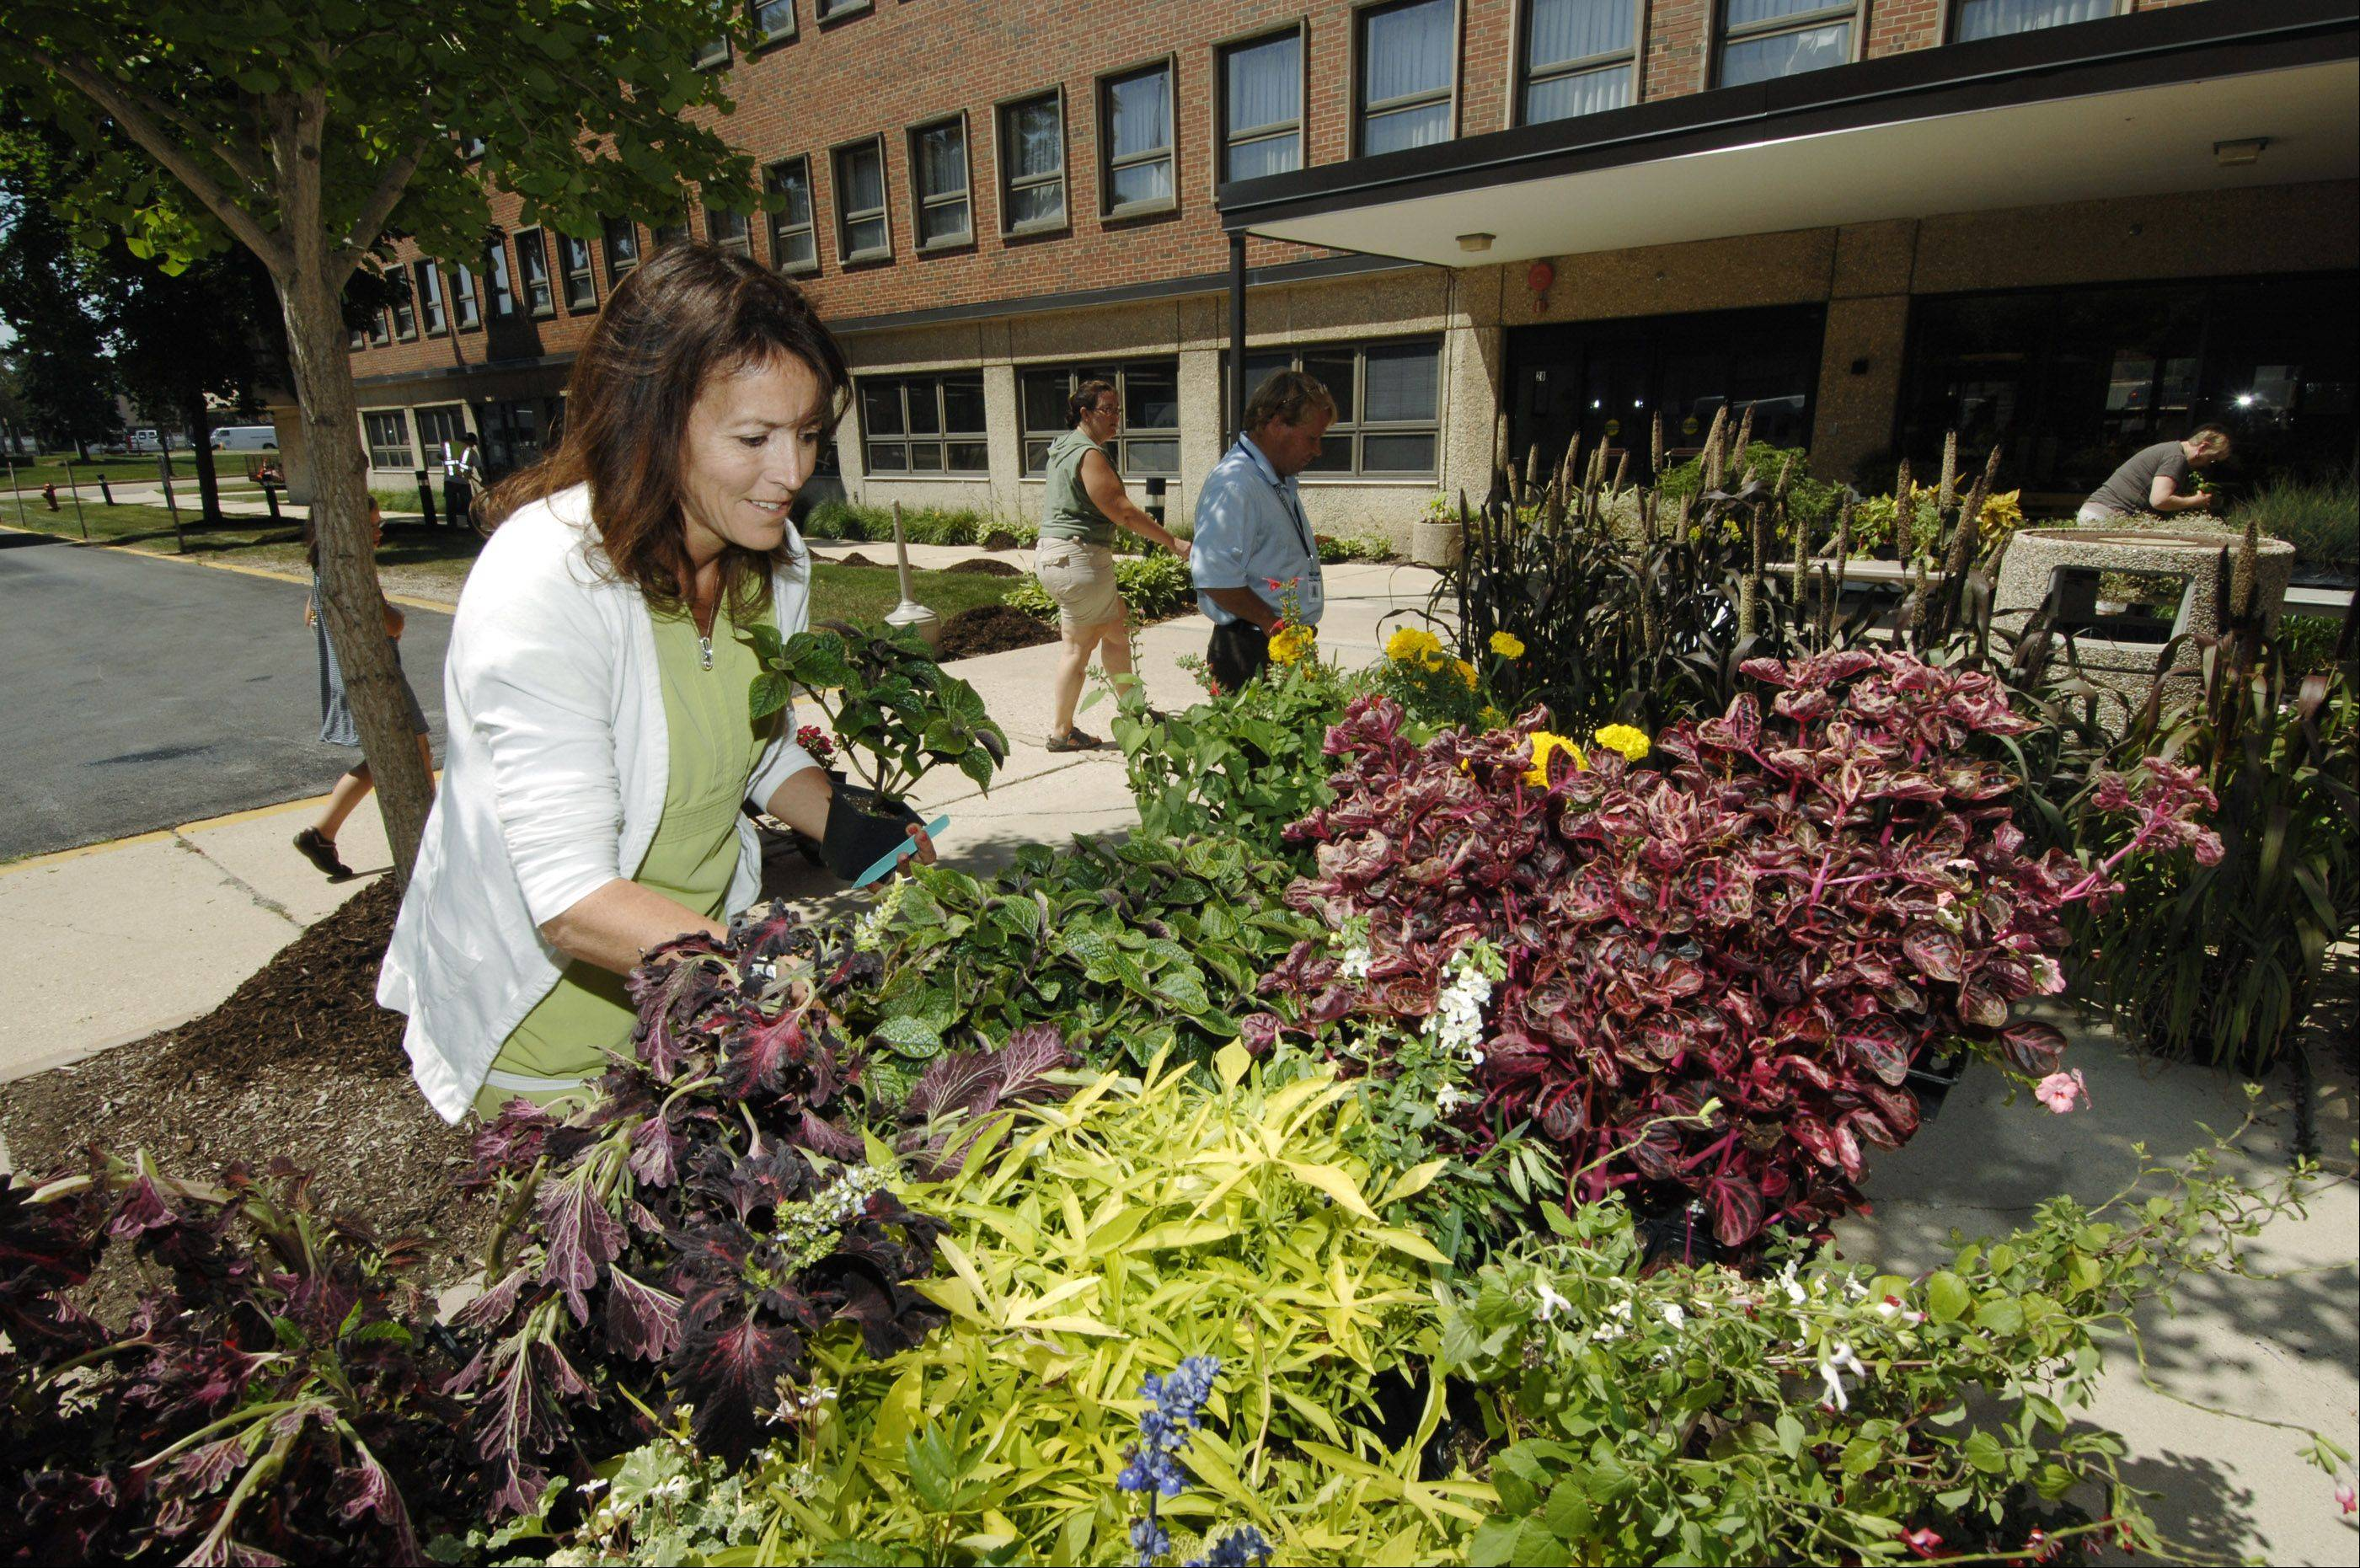 Lenora Trent, one of the nurses at the DuPage Convalescent Center in Wheaton, beats the rush to find flowers at the center's annual plant sale Friday. The plants were on sale for $5 per flat and were donated by Cantigny.